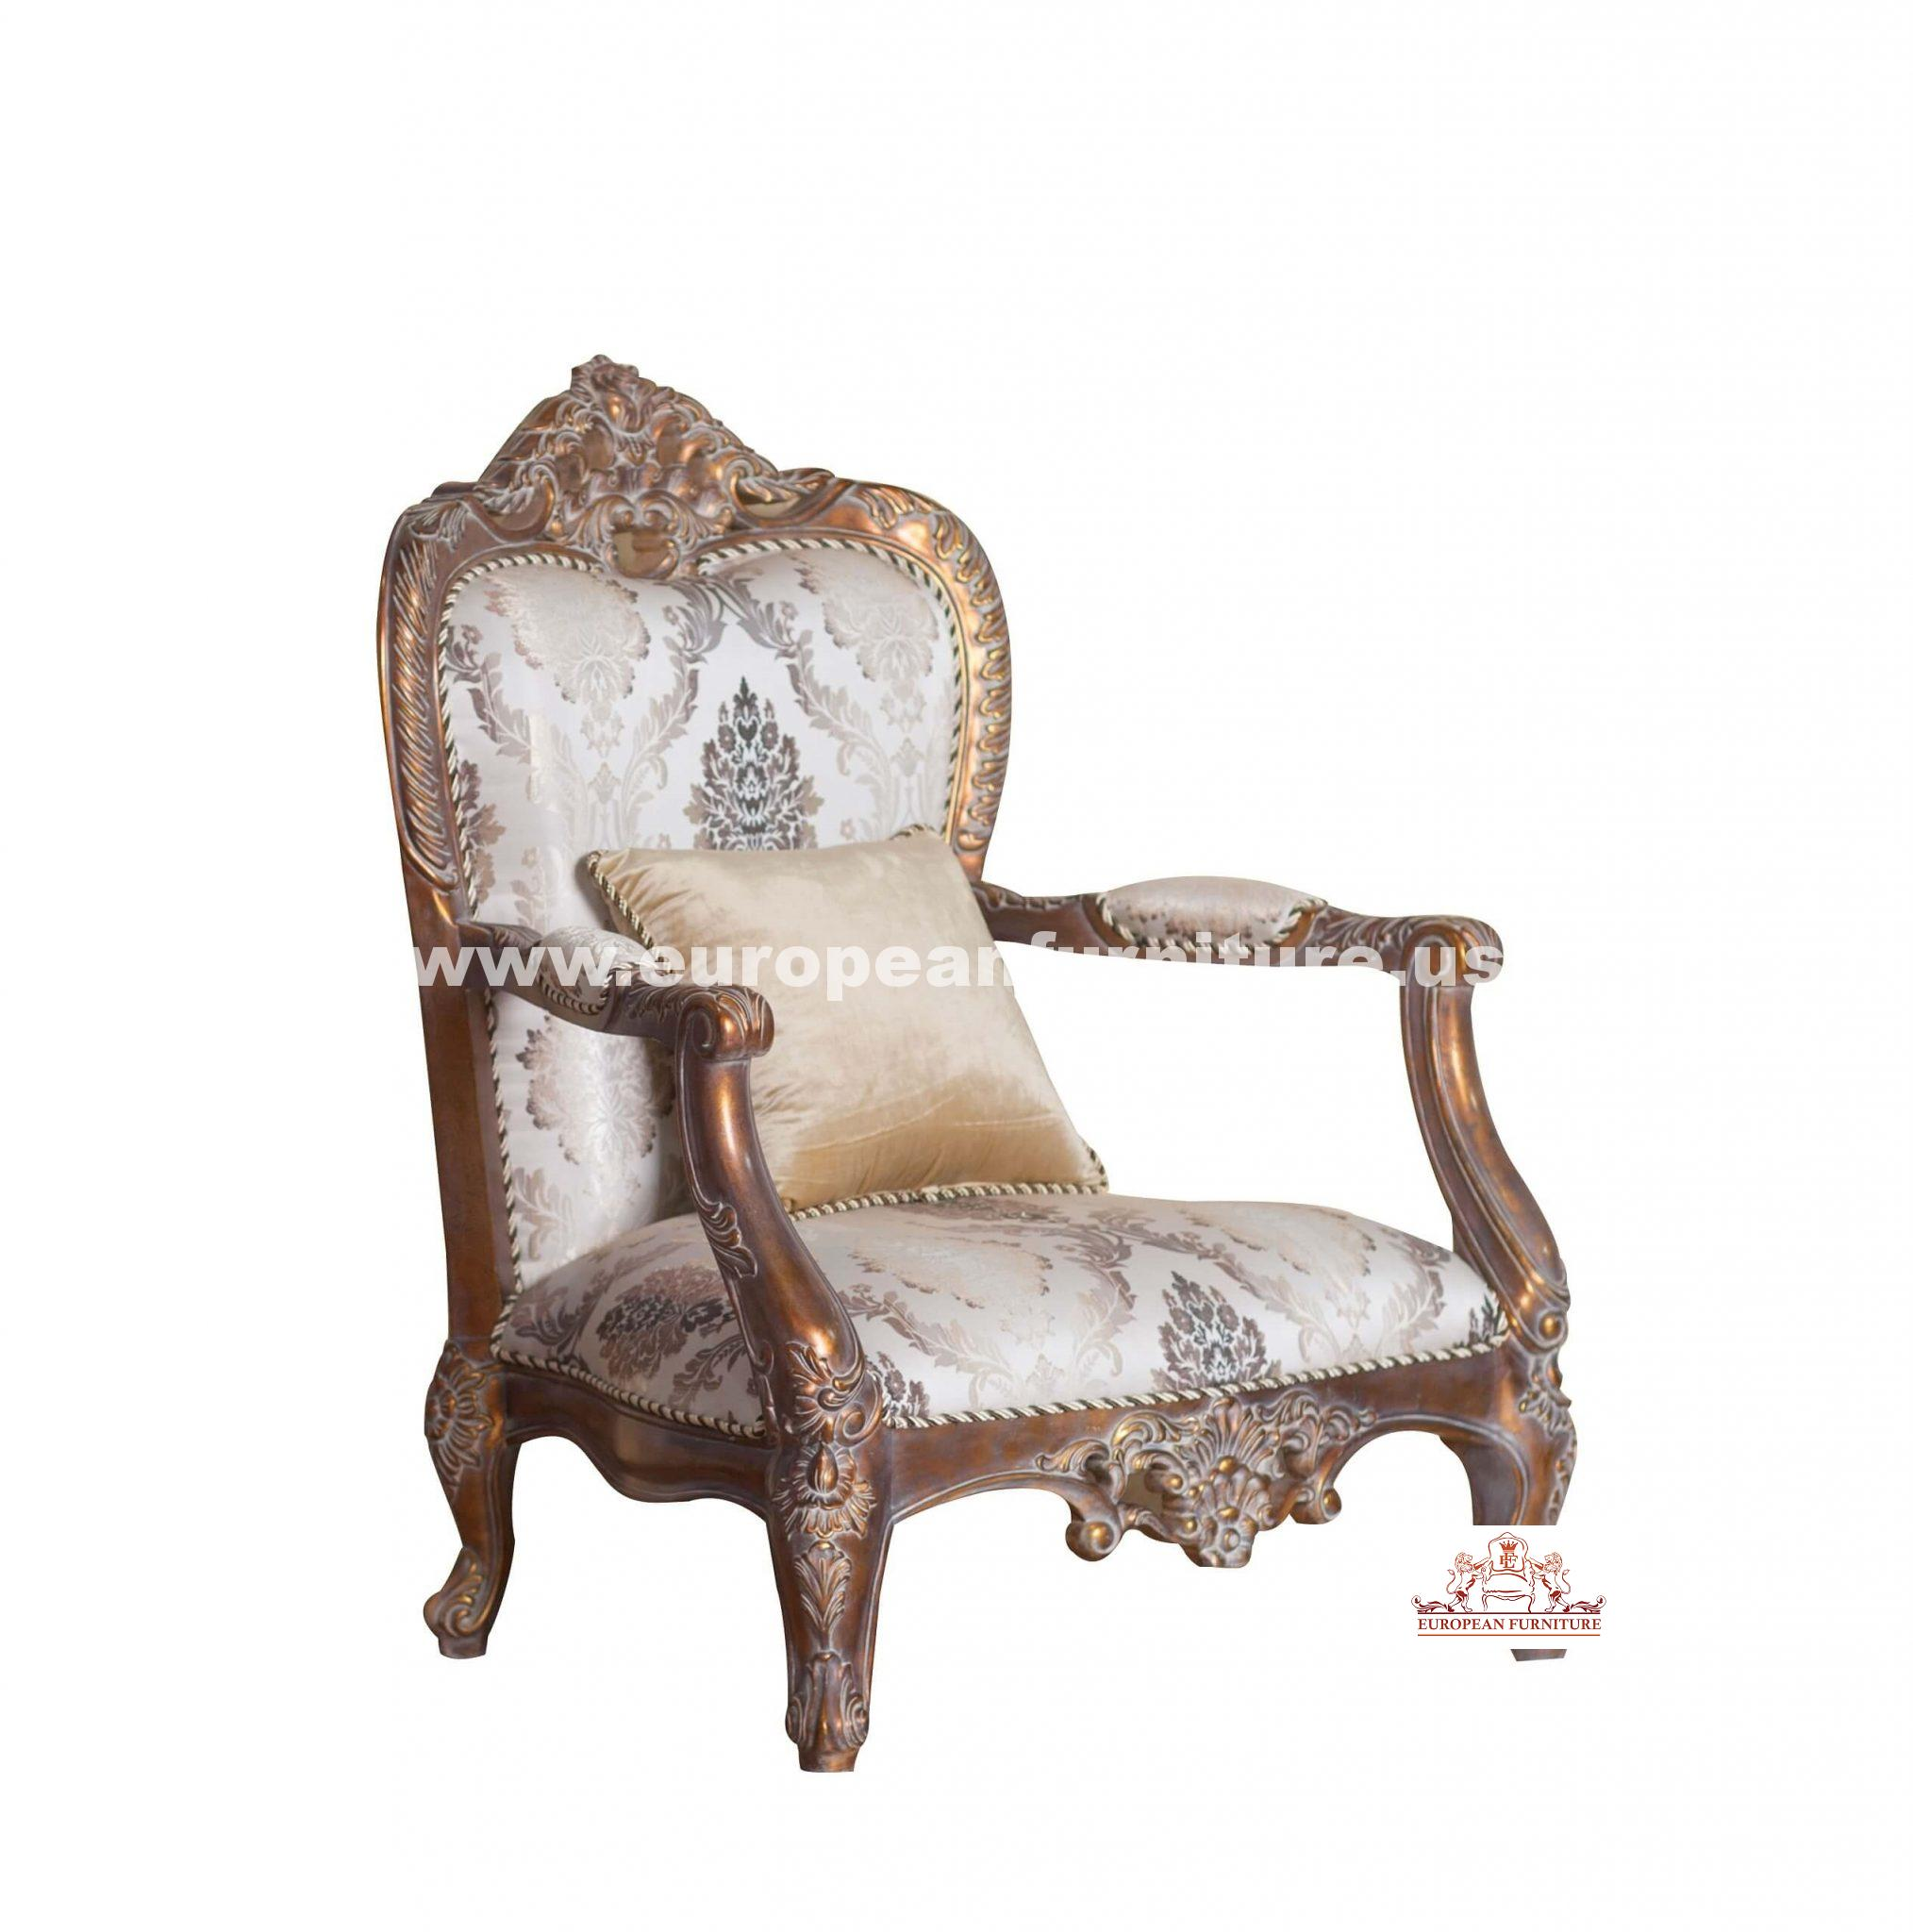 victorian accent chairs light blue chair luxury european furniture